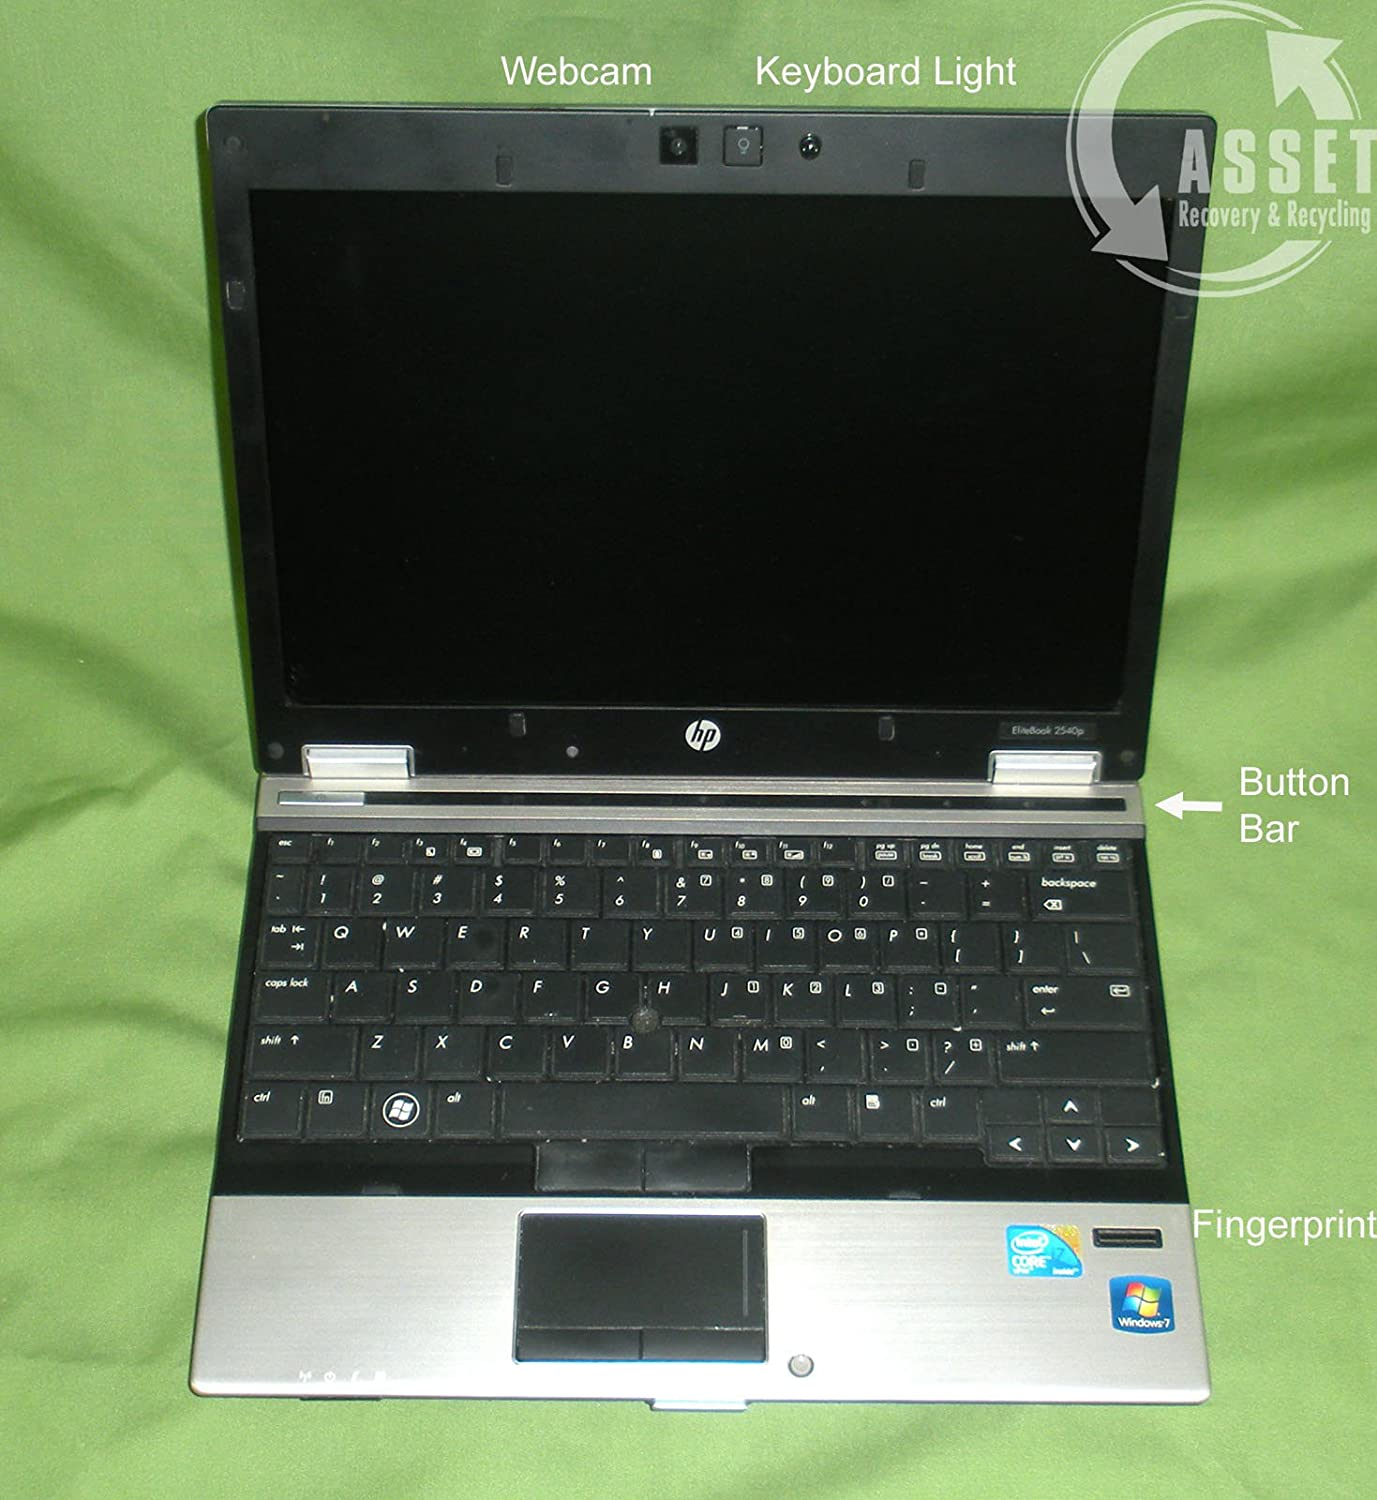 HP-Elitebook-2540p-Notebook-Core-i7-2-13GHz-120GB-4GB-DVD-RW-12-Widescreen-Display-Sold-by-a-Microsoft-Authorized-Refurbisher-by-Elitebook